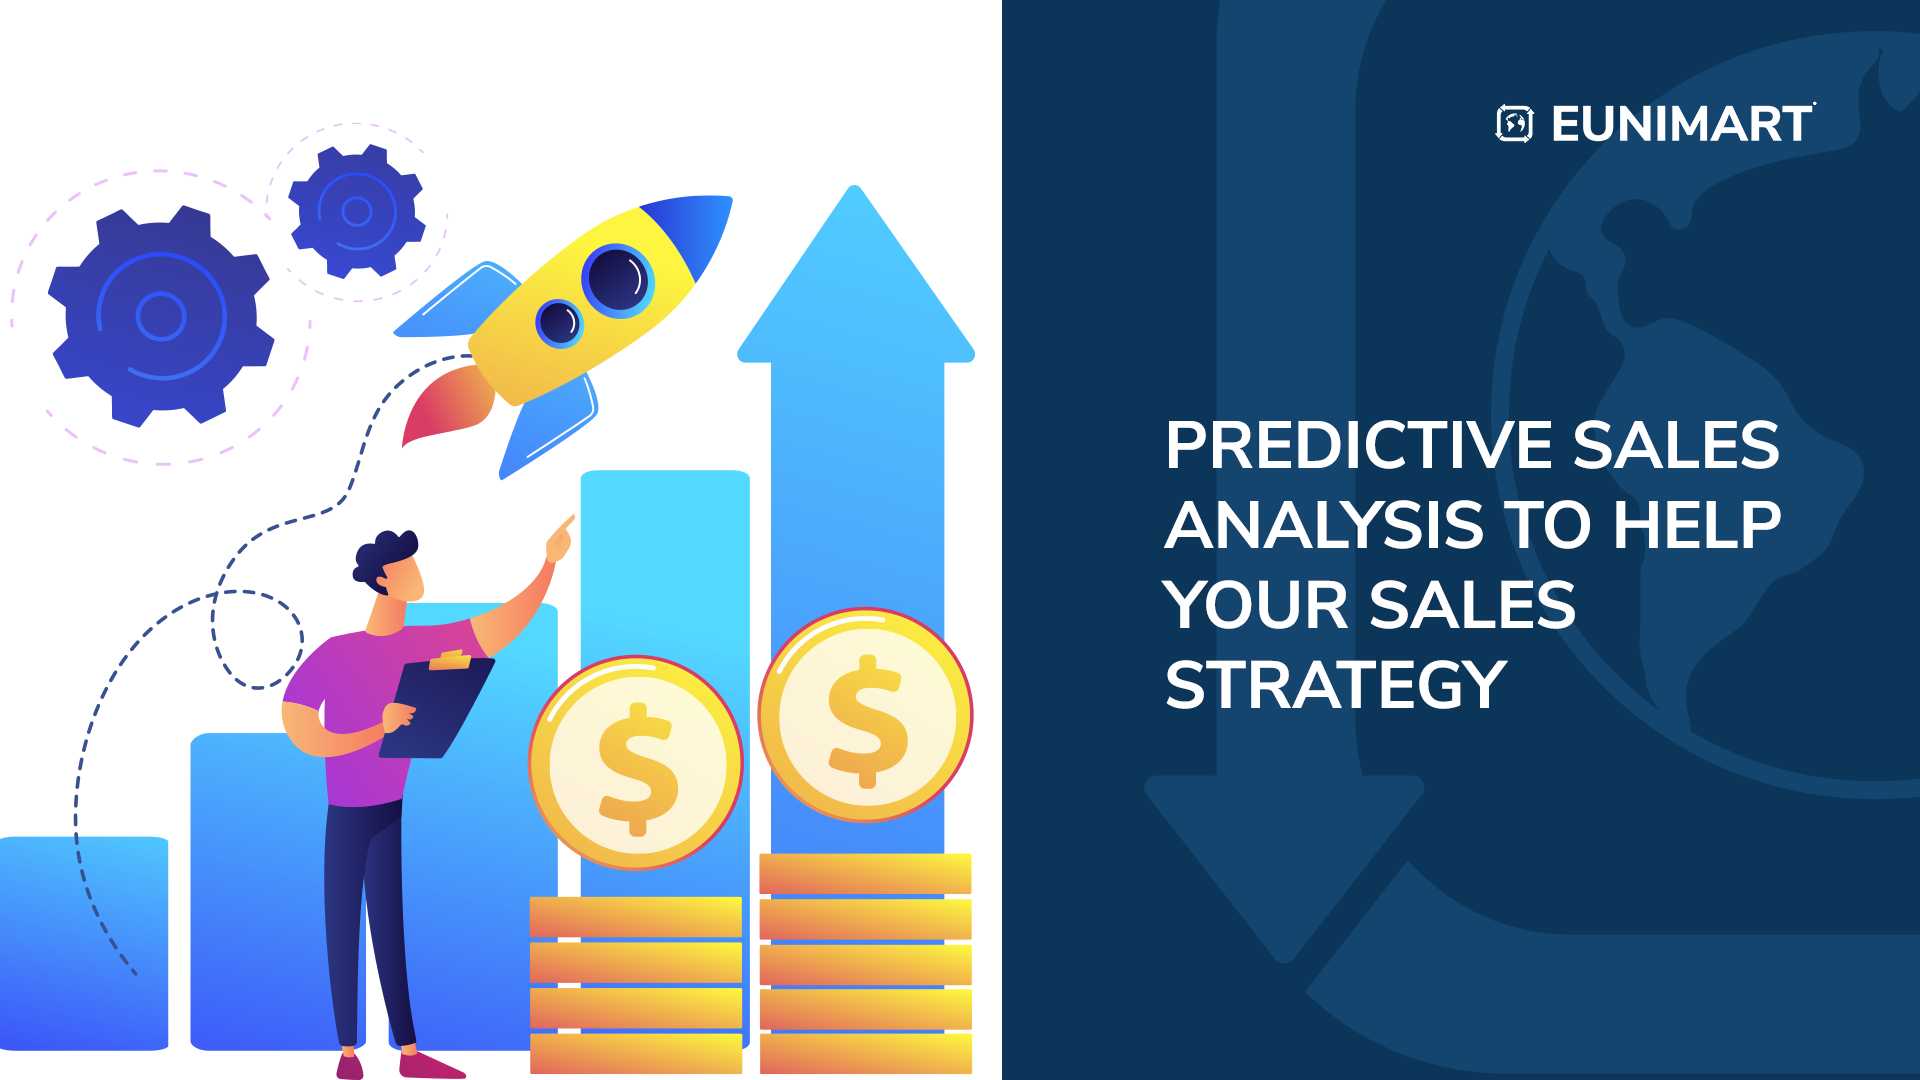 Predictive sales analysis to help your sales strategy